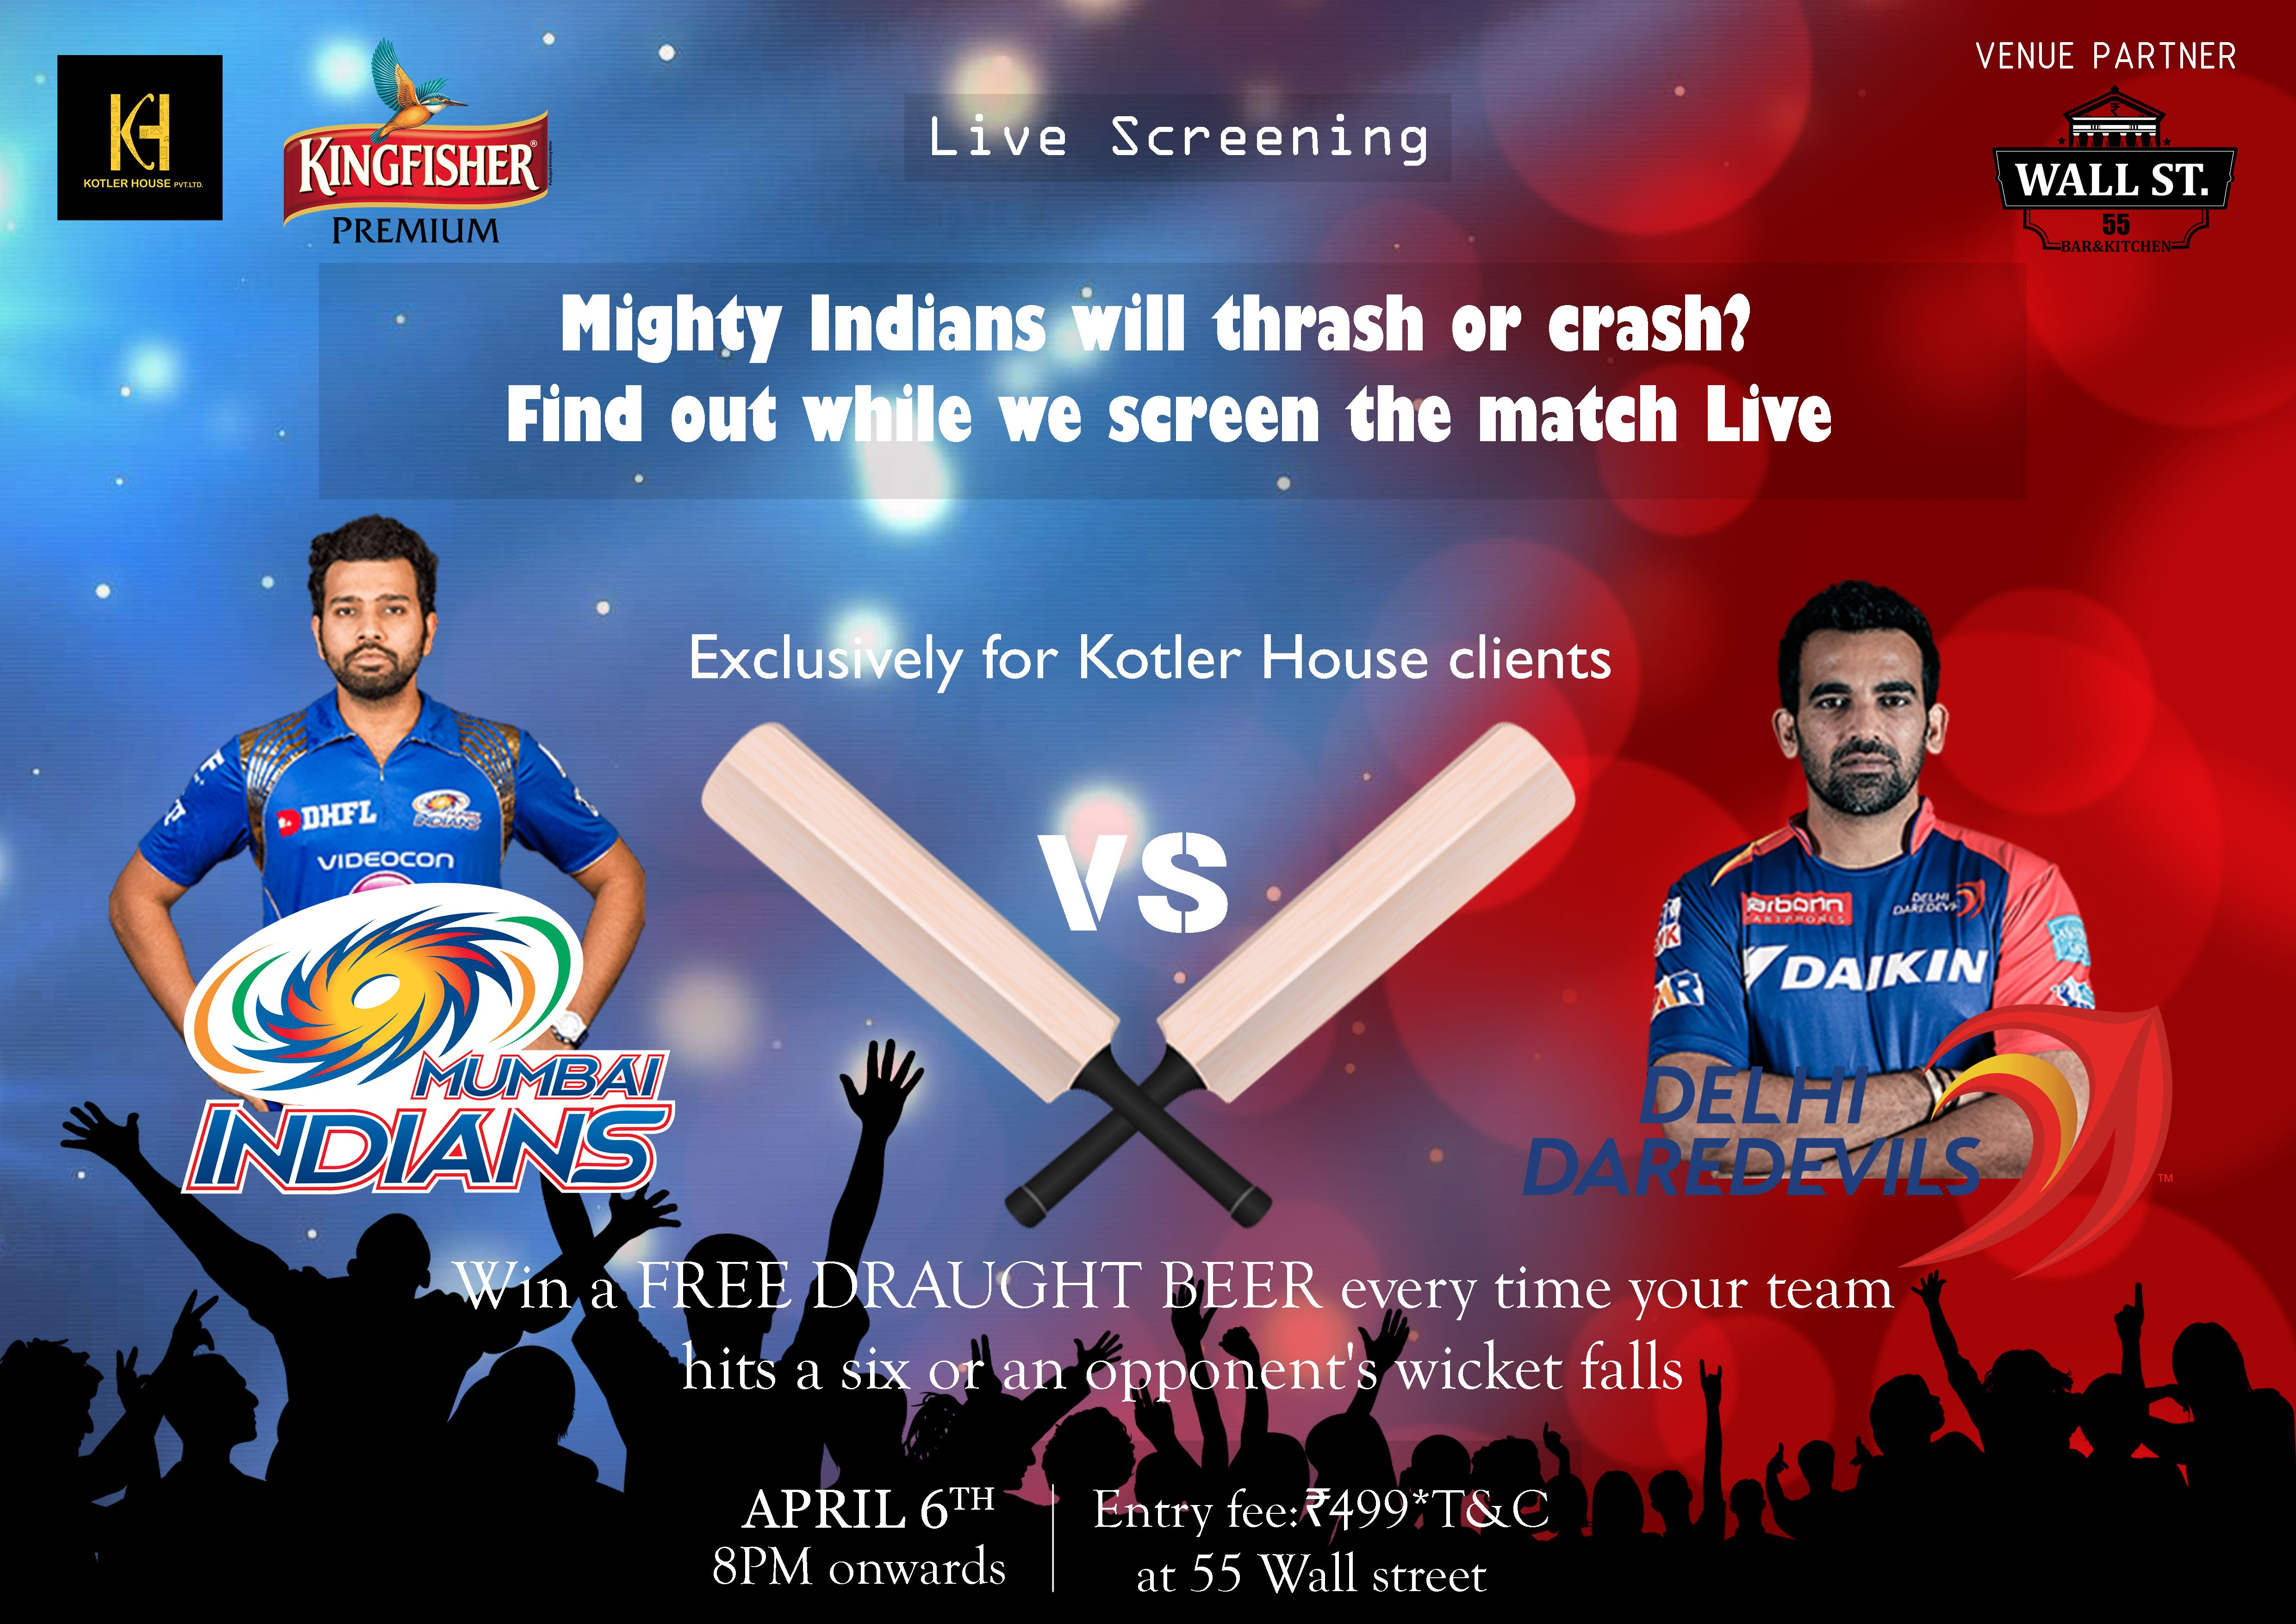 Mighty Indians will thrash or crash? Dine out while we screen the match live at #55WallStreet, JP Nagar and Win a free draught #beer every time your team hits a six or your opponent's wicket falls! Exclusively for #KotlerHouse Clients. To Claim offer Fill the Form/ Give a Missed Call: 080 65333442 https://goo.gl/forms/5qnrapvZAMNFXhLu1